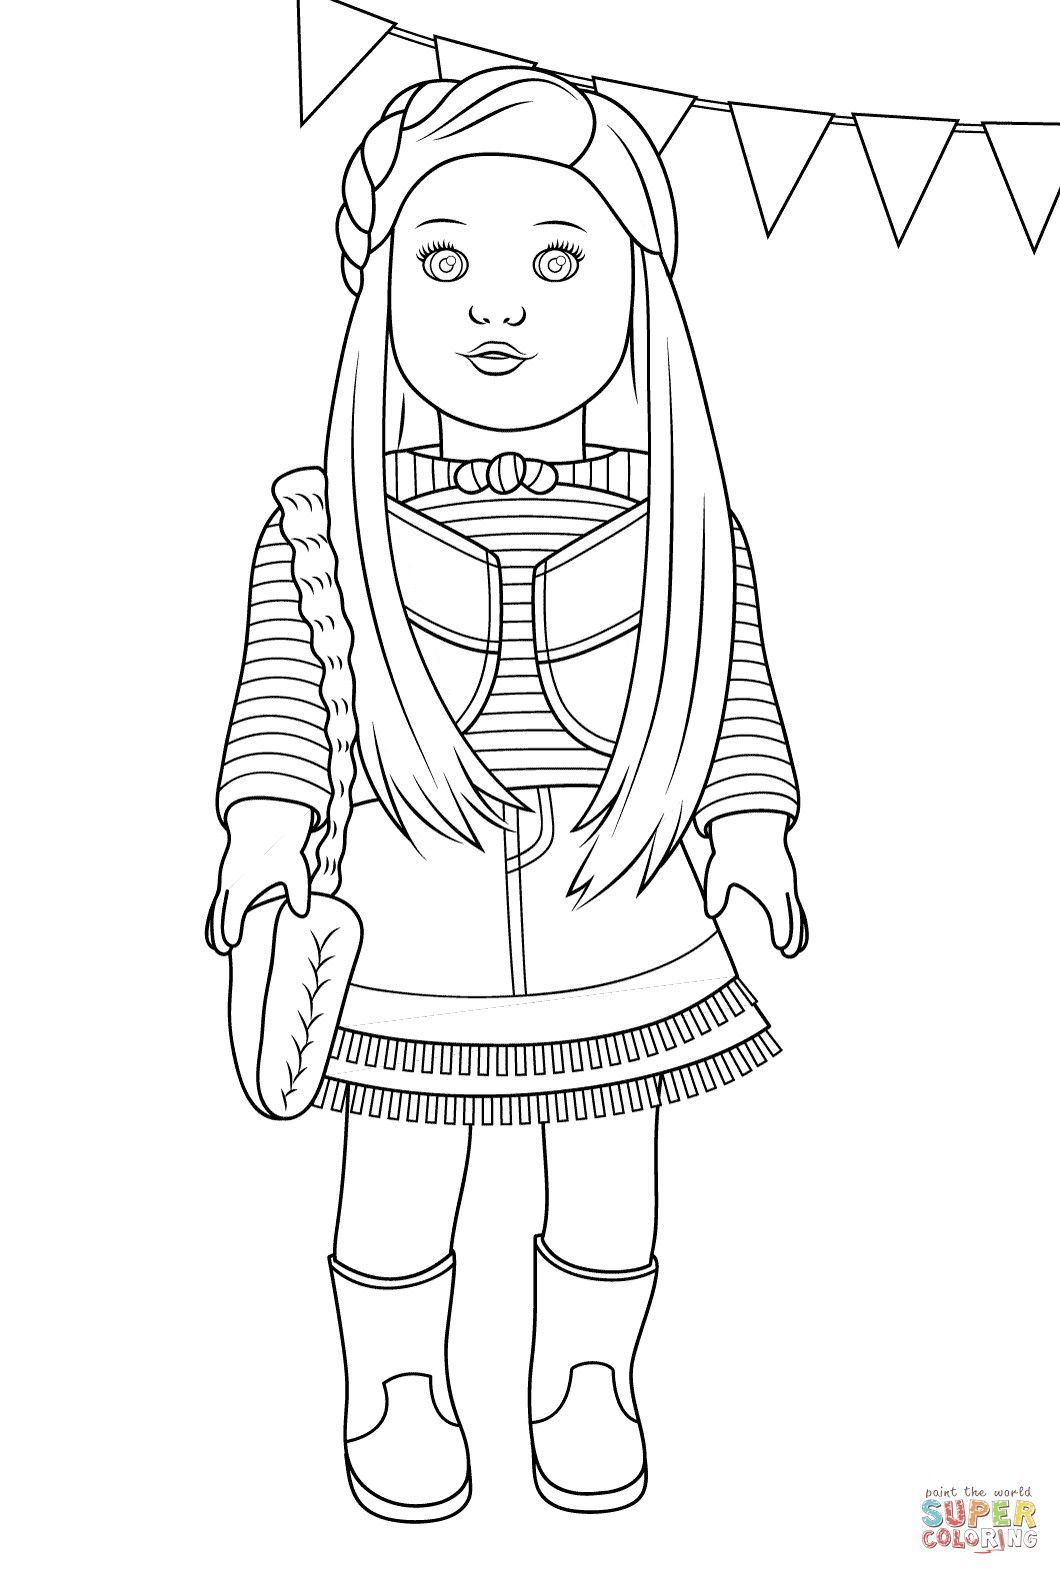 Grab Your Fresh Coloring Pages American Girl Free Http Gethighit Com Fresh Color American Girl Doll Printables American Girl Birthday American Girl Parties